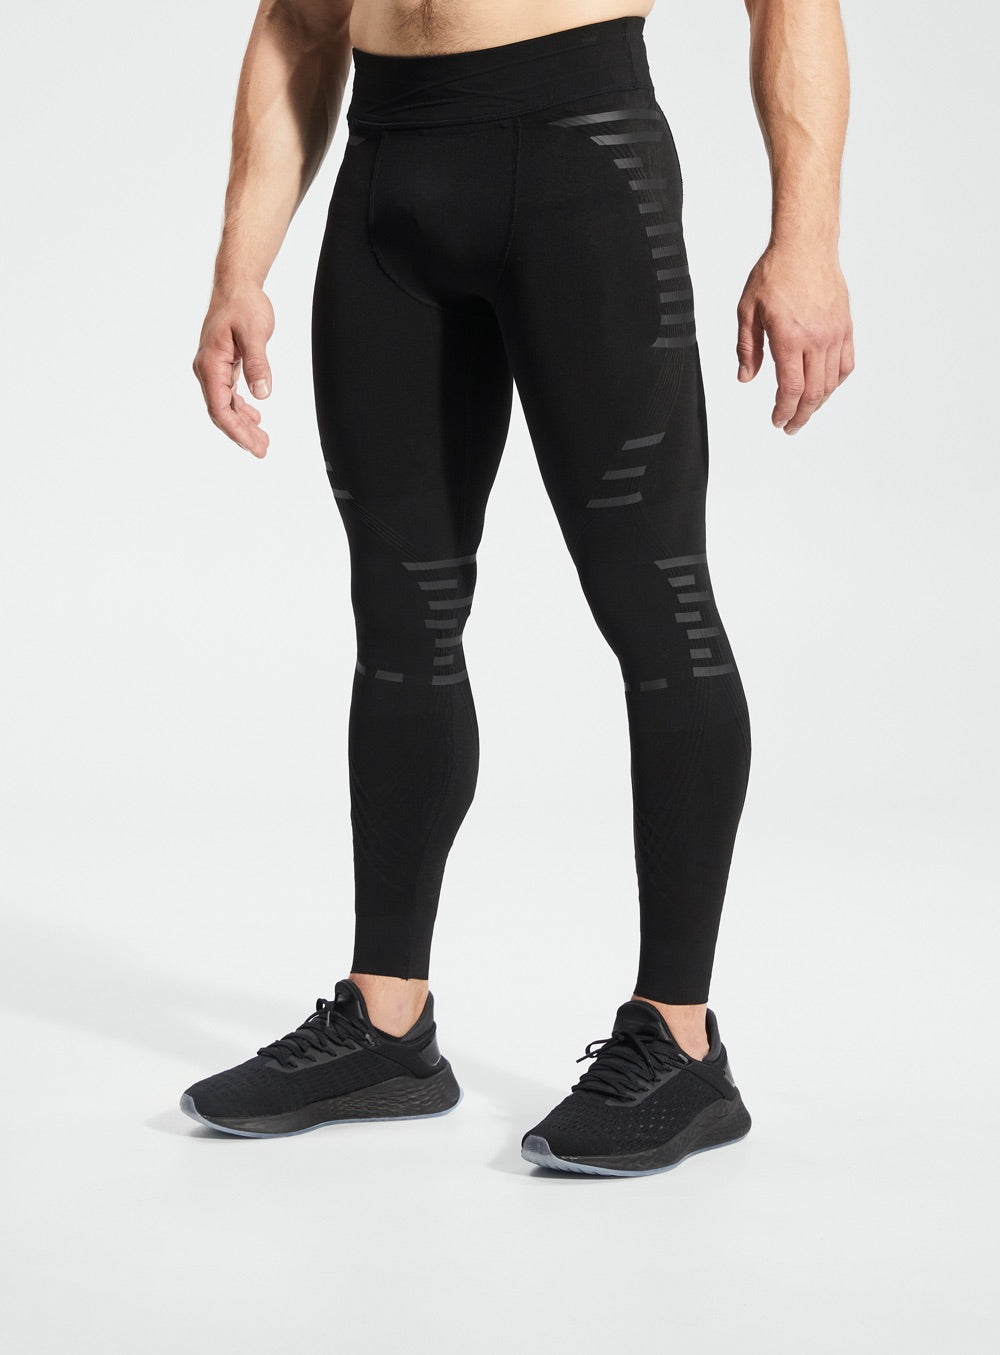 Load image into Gallery viewer, Men knee braces, knee support tights, compression pants